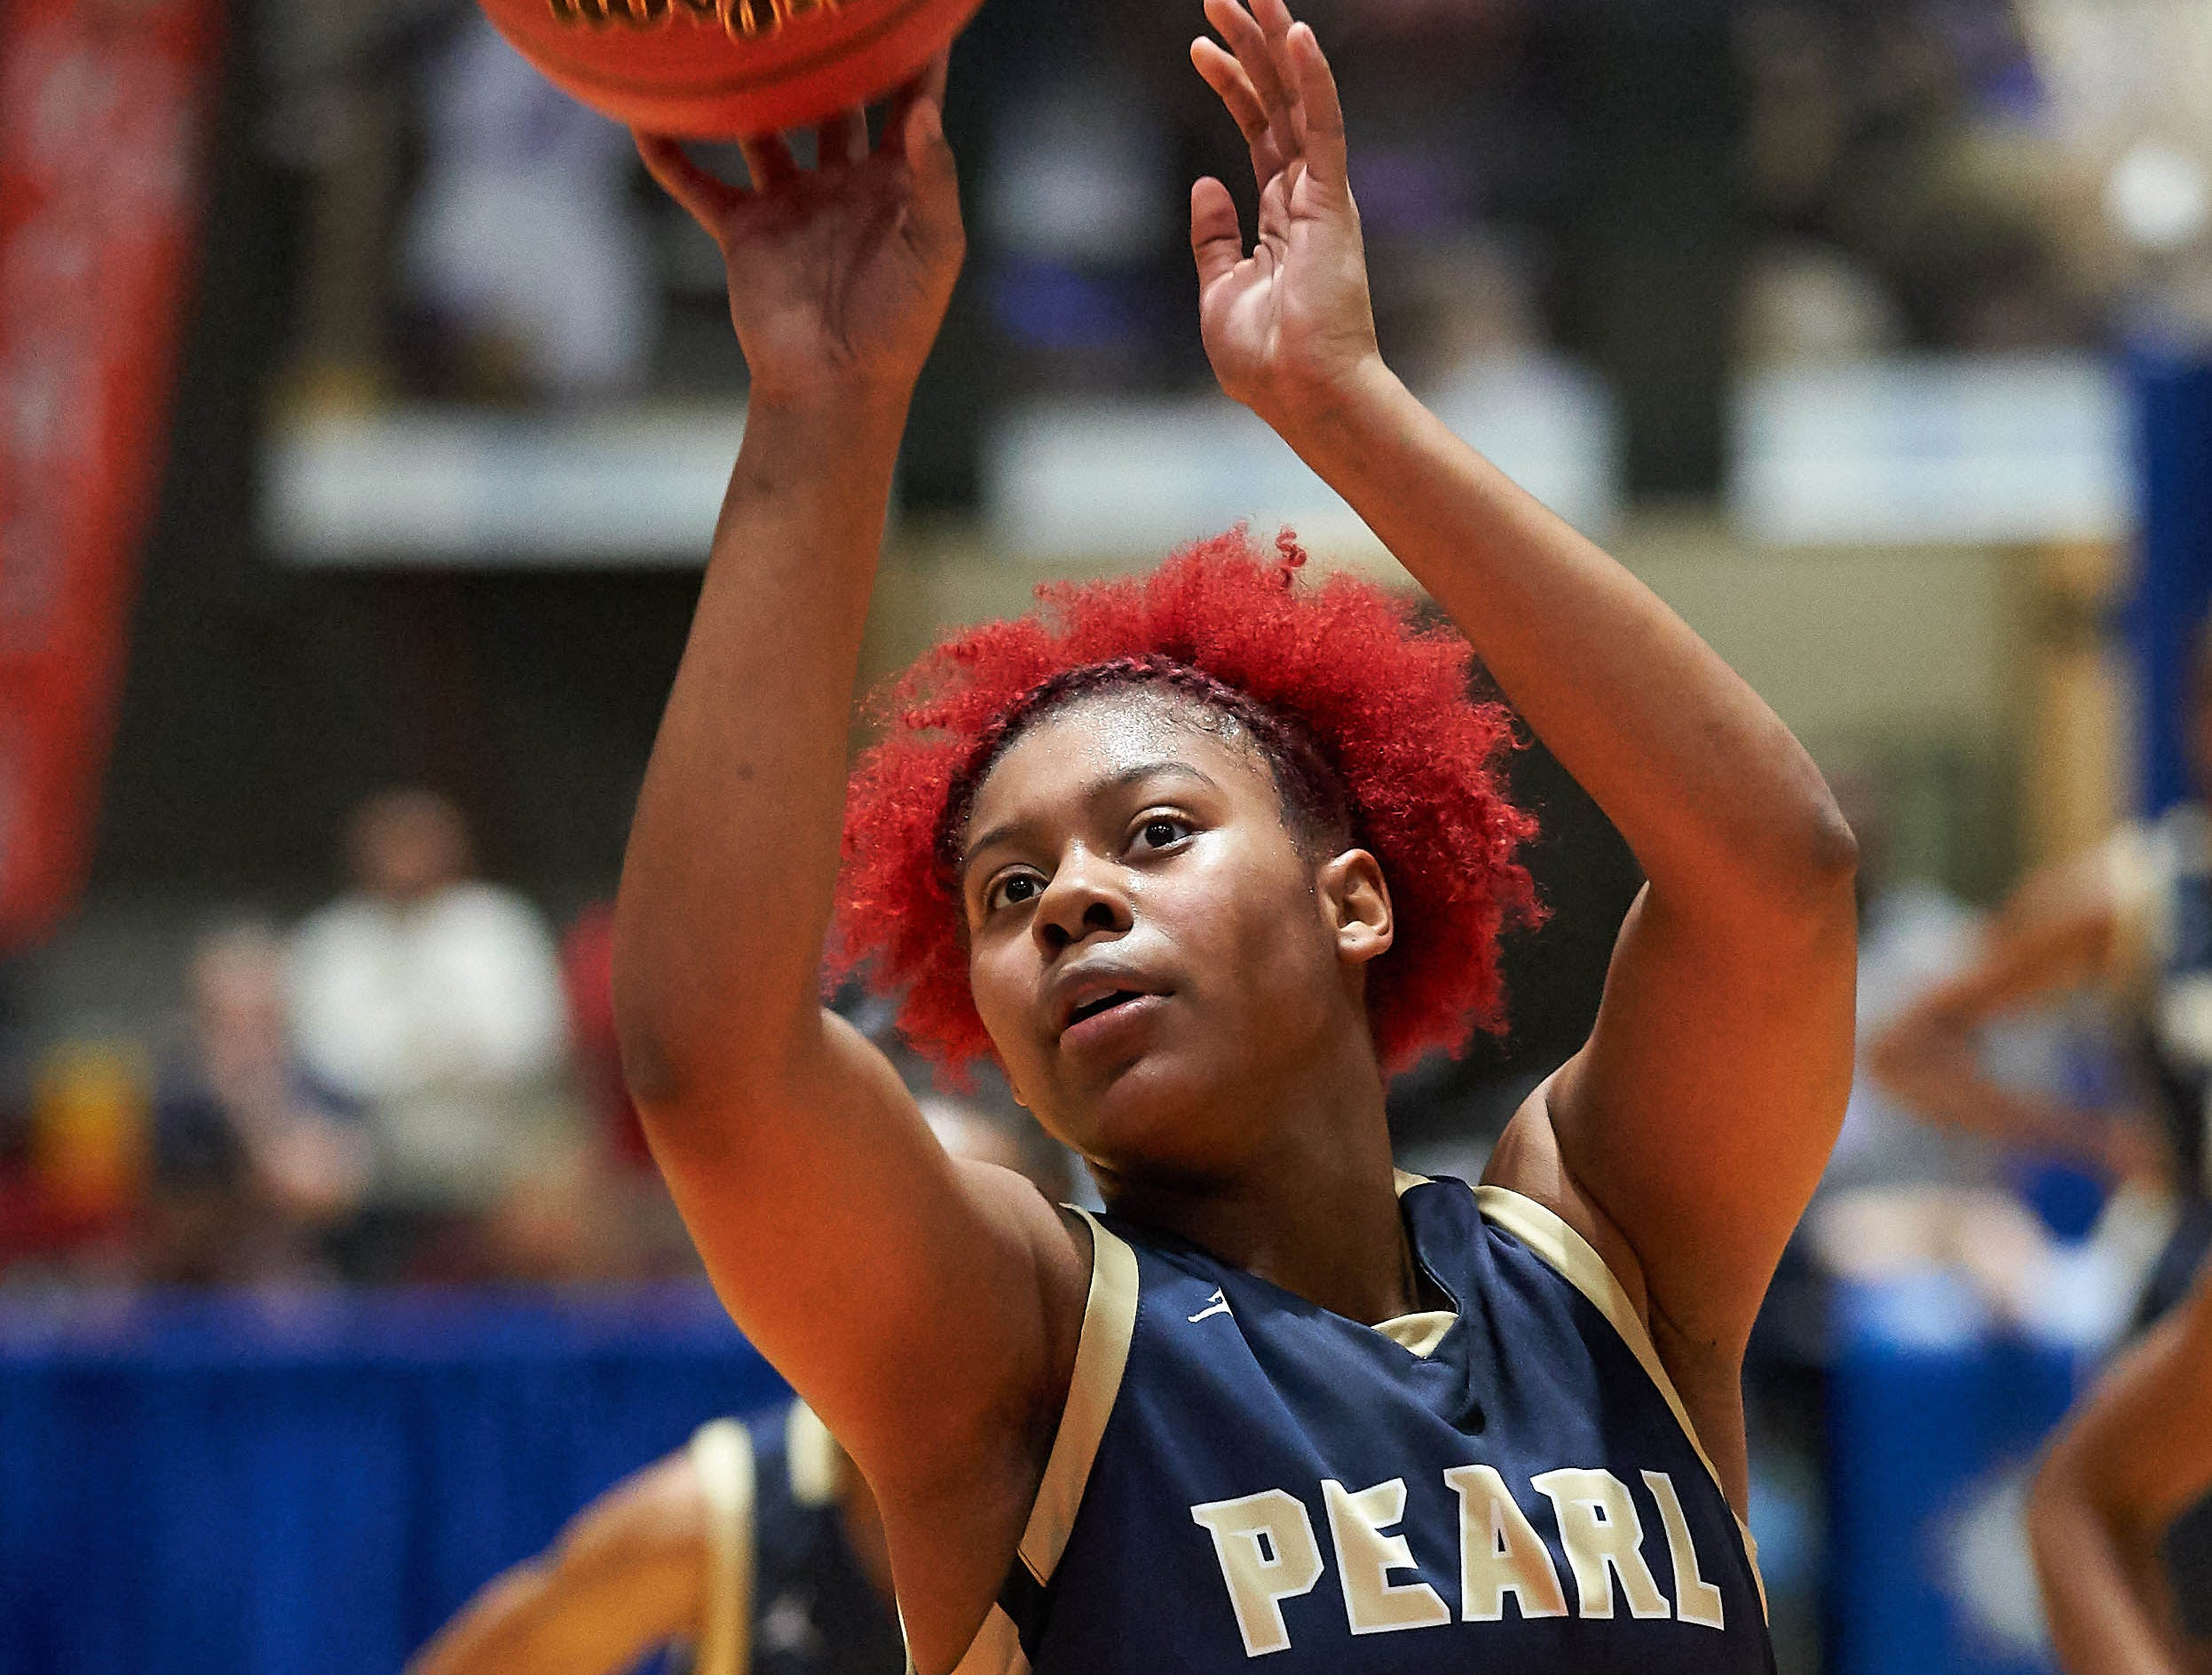 Pearl against Terry during the MHSAA 6A Girls Basketball Championship Finals held at the Mississippi Coliseum in Jackson, MS, Saturday March 9th, 2019.(Bob Smith)